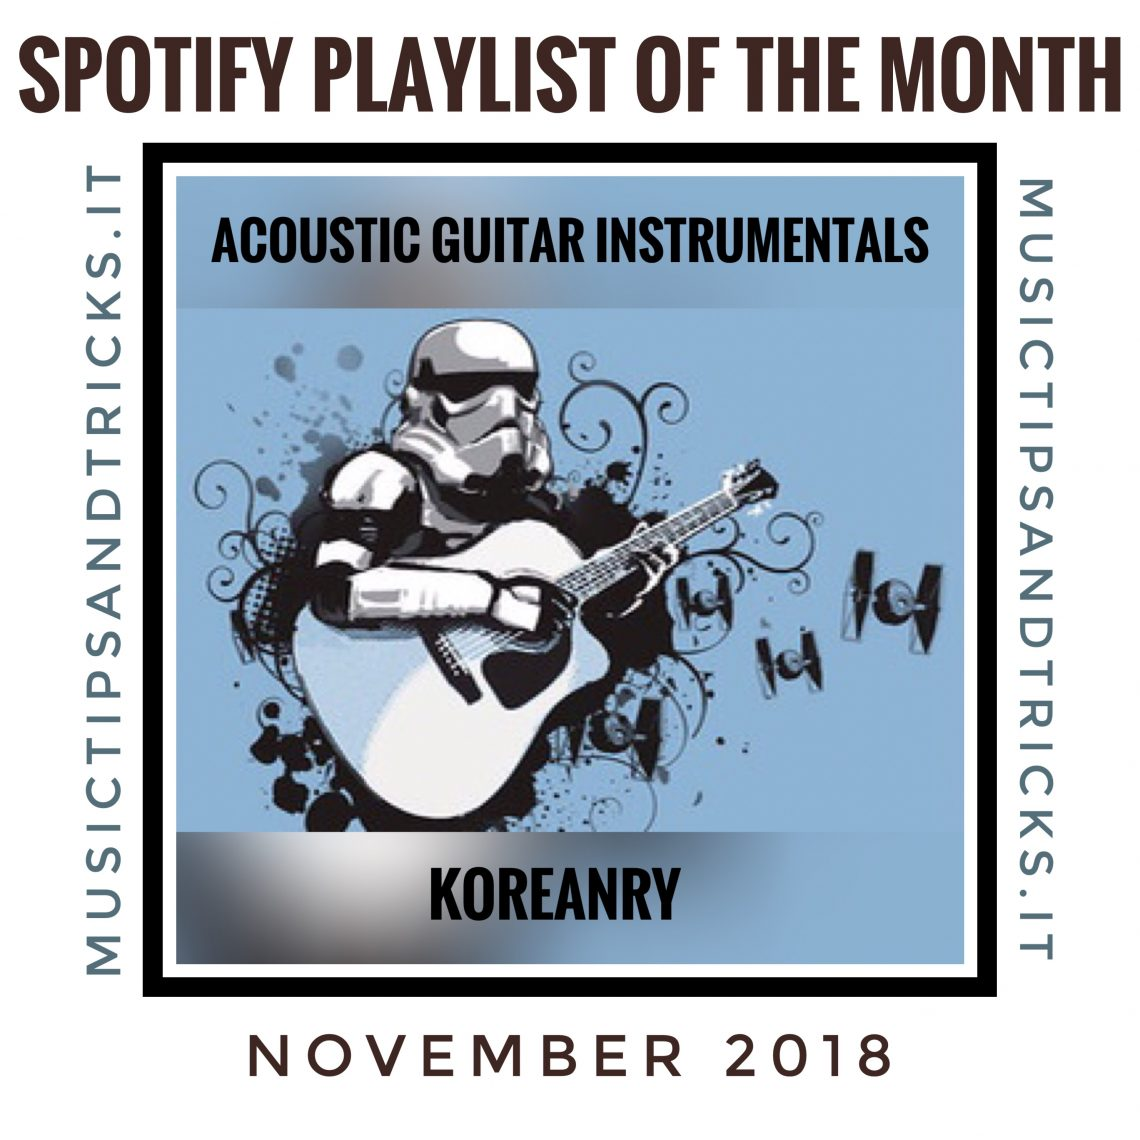 Acoustic Guitar Instrumentals Spotify Playlist by Koreanry